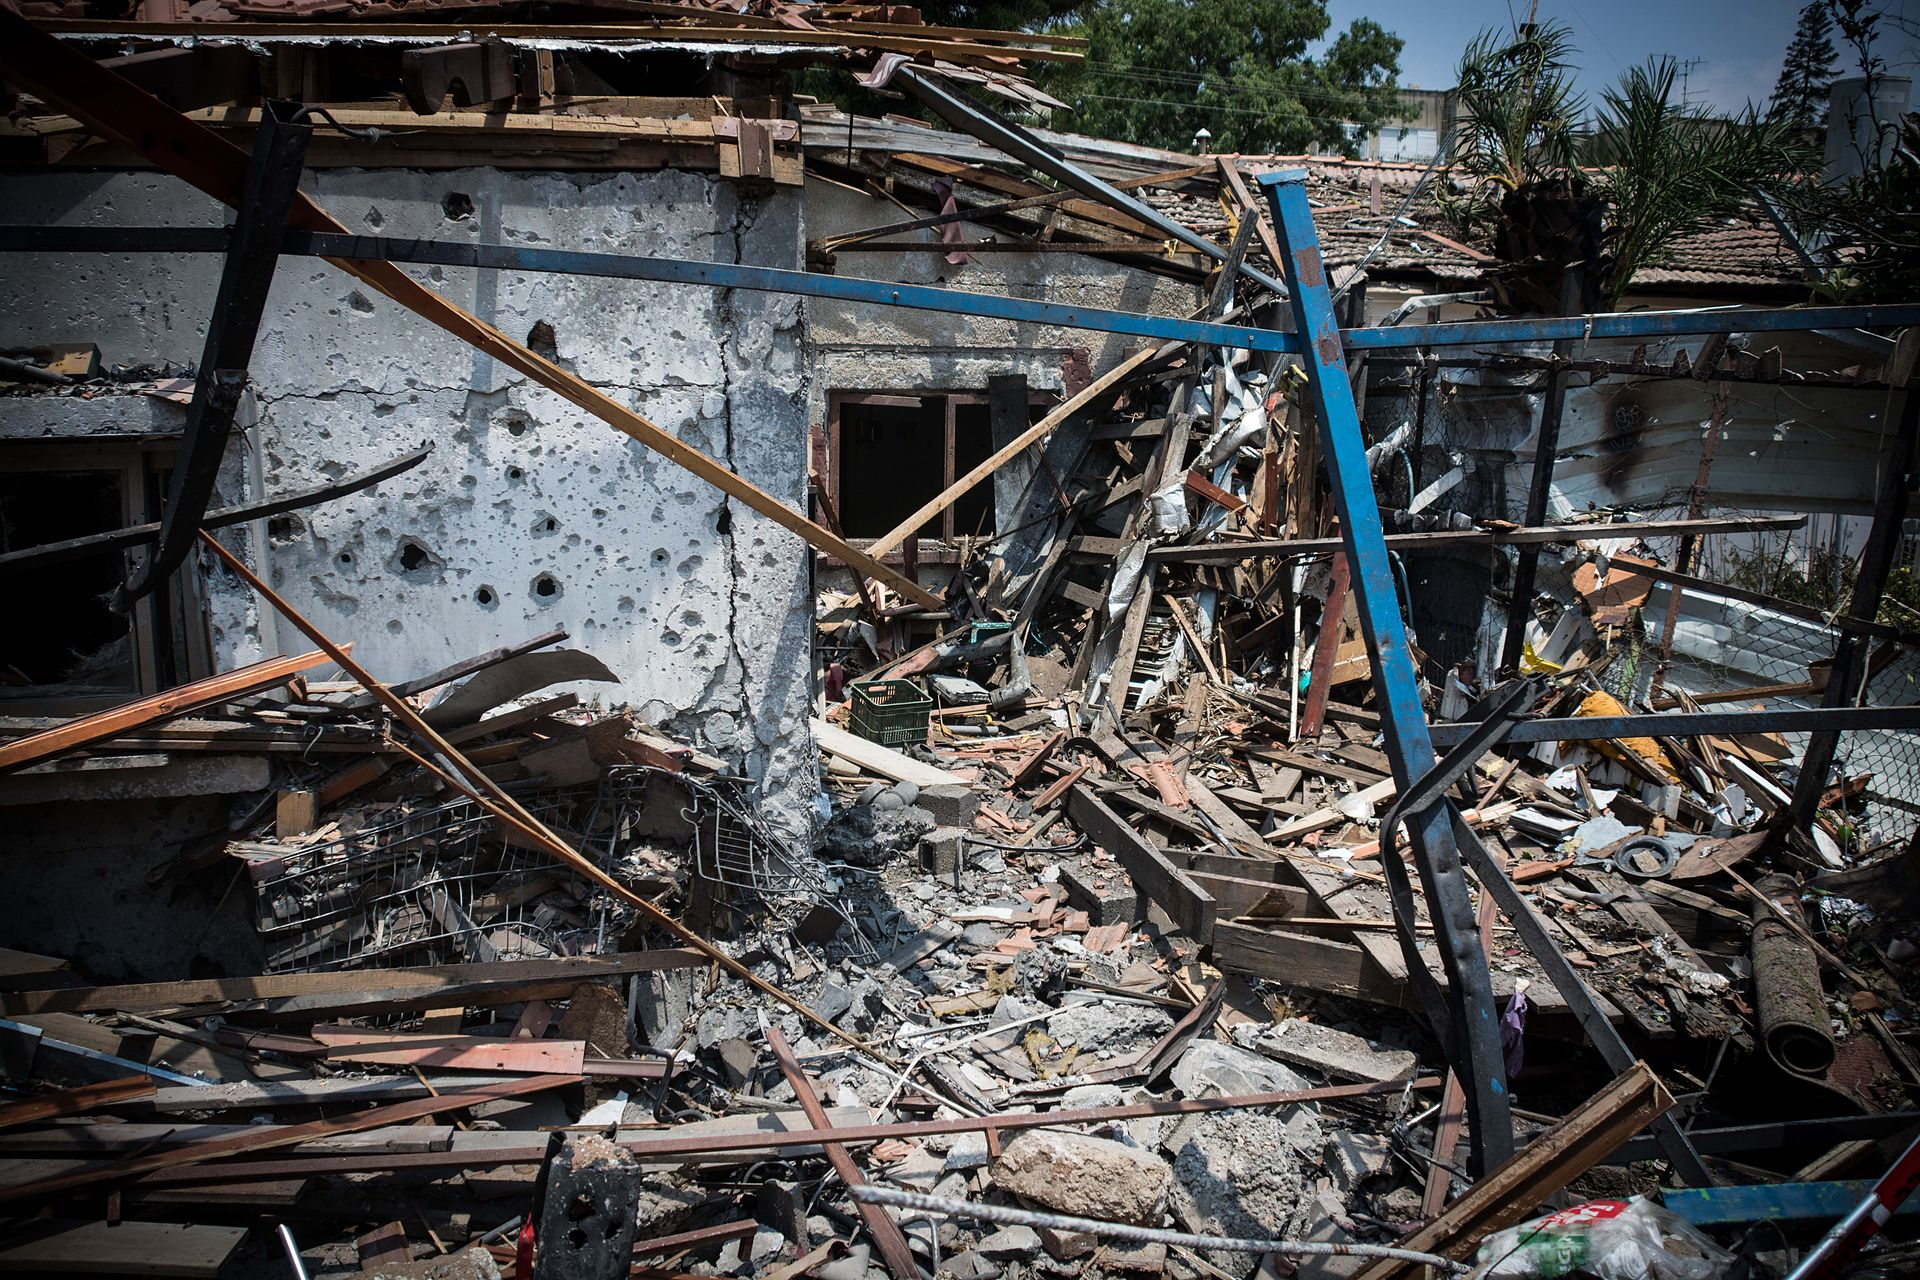 house_in_israel_destroyed_by_hamas_rocket_14713208821